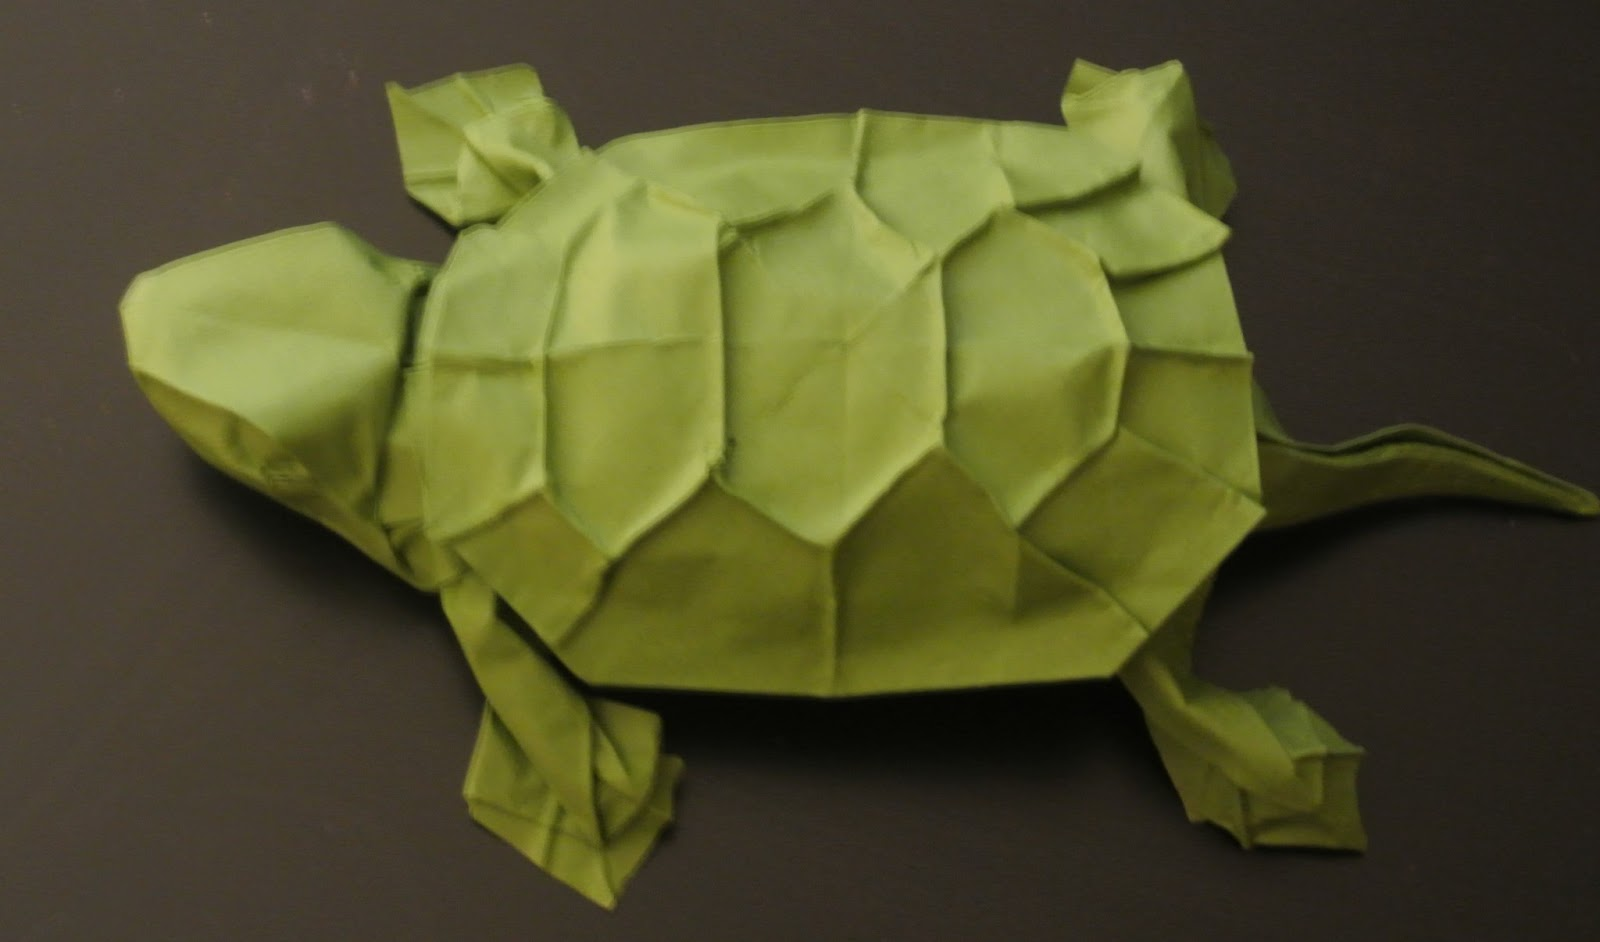 The Midnight Carver Wet Folding Cardstock Origami Turtle How To Fold An Samurai Sword It Has Its Own Set Of Flaws But I Really Only Folded Kill Time While Waited For My Methylcellulose Up